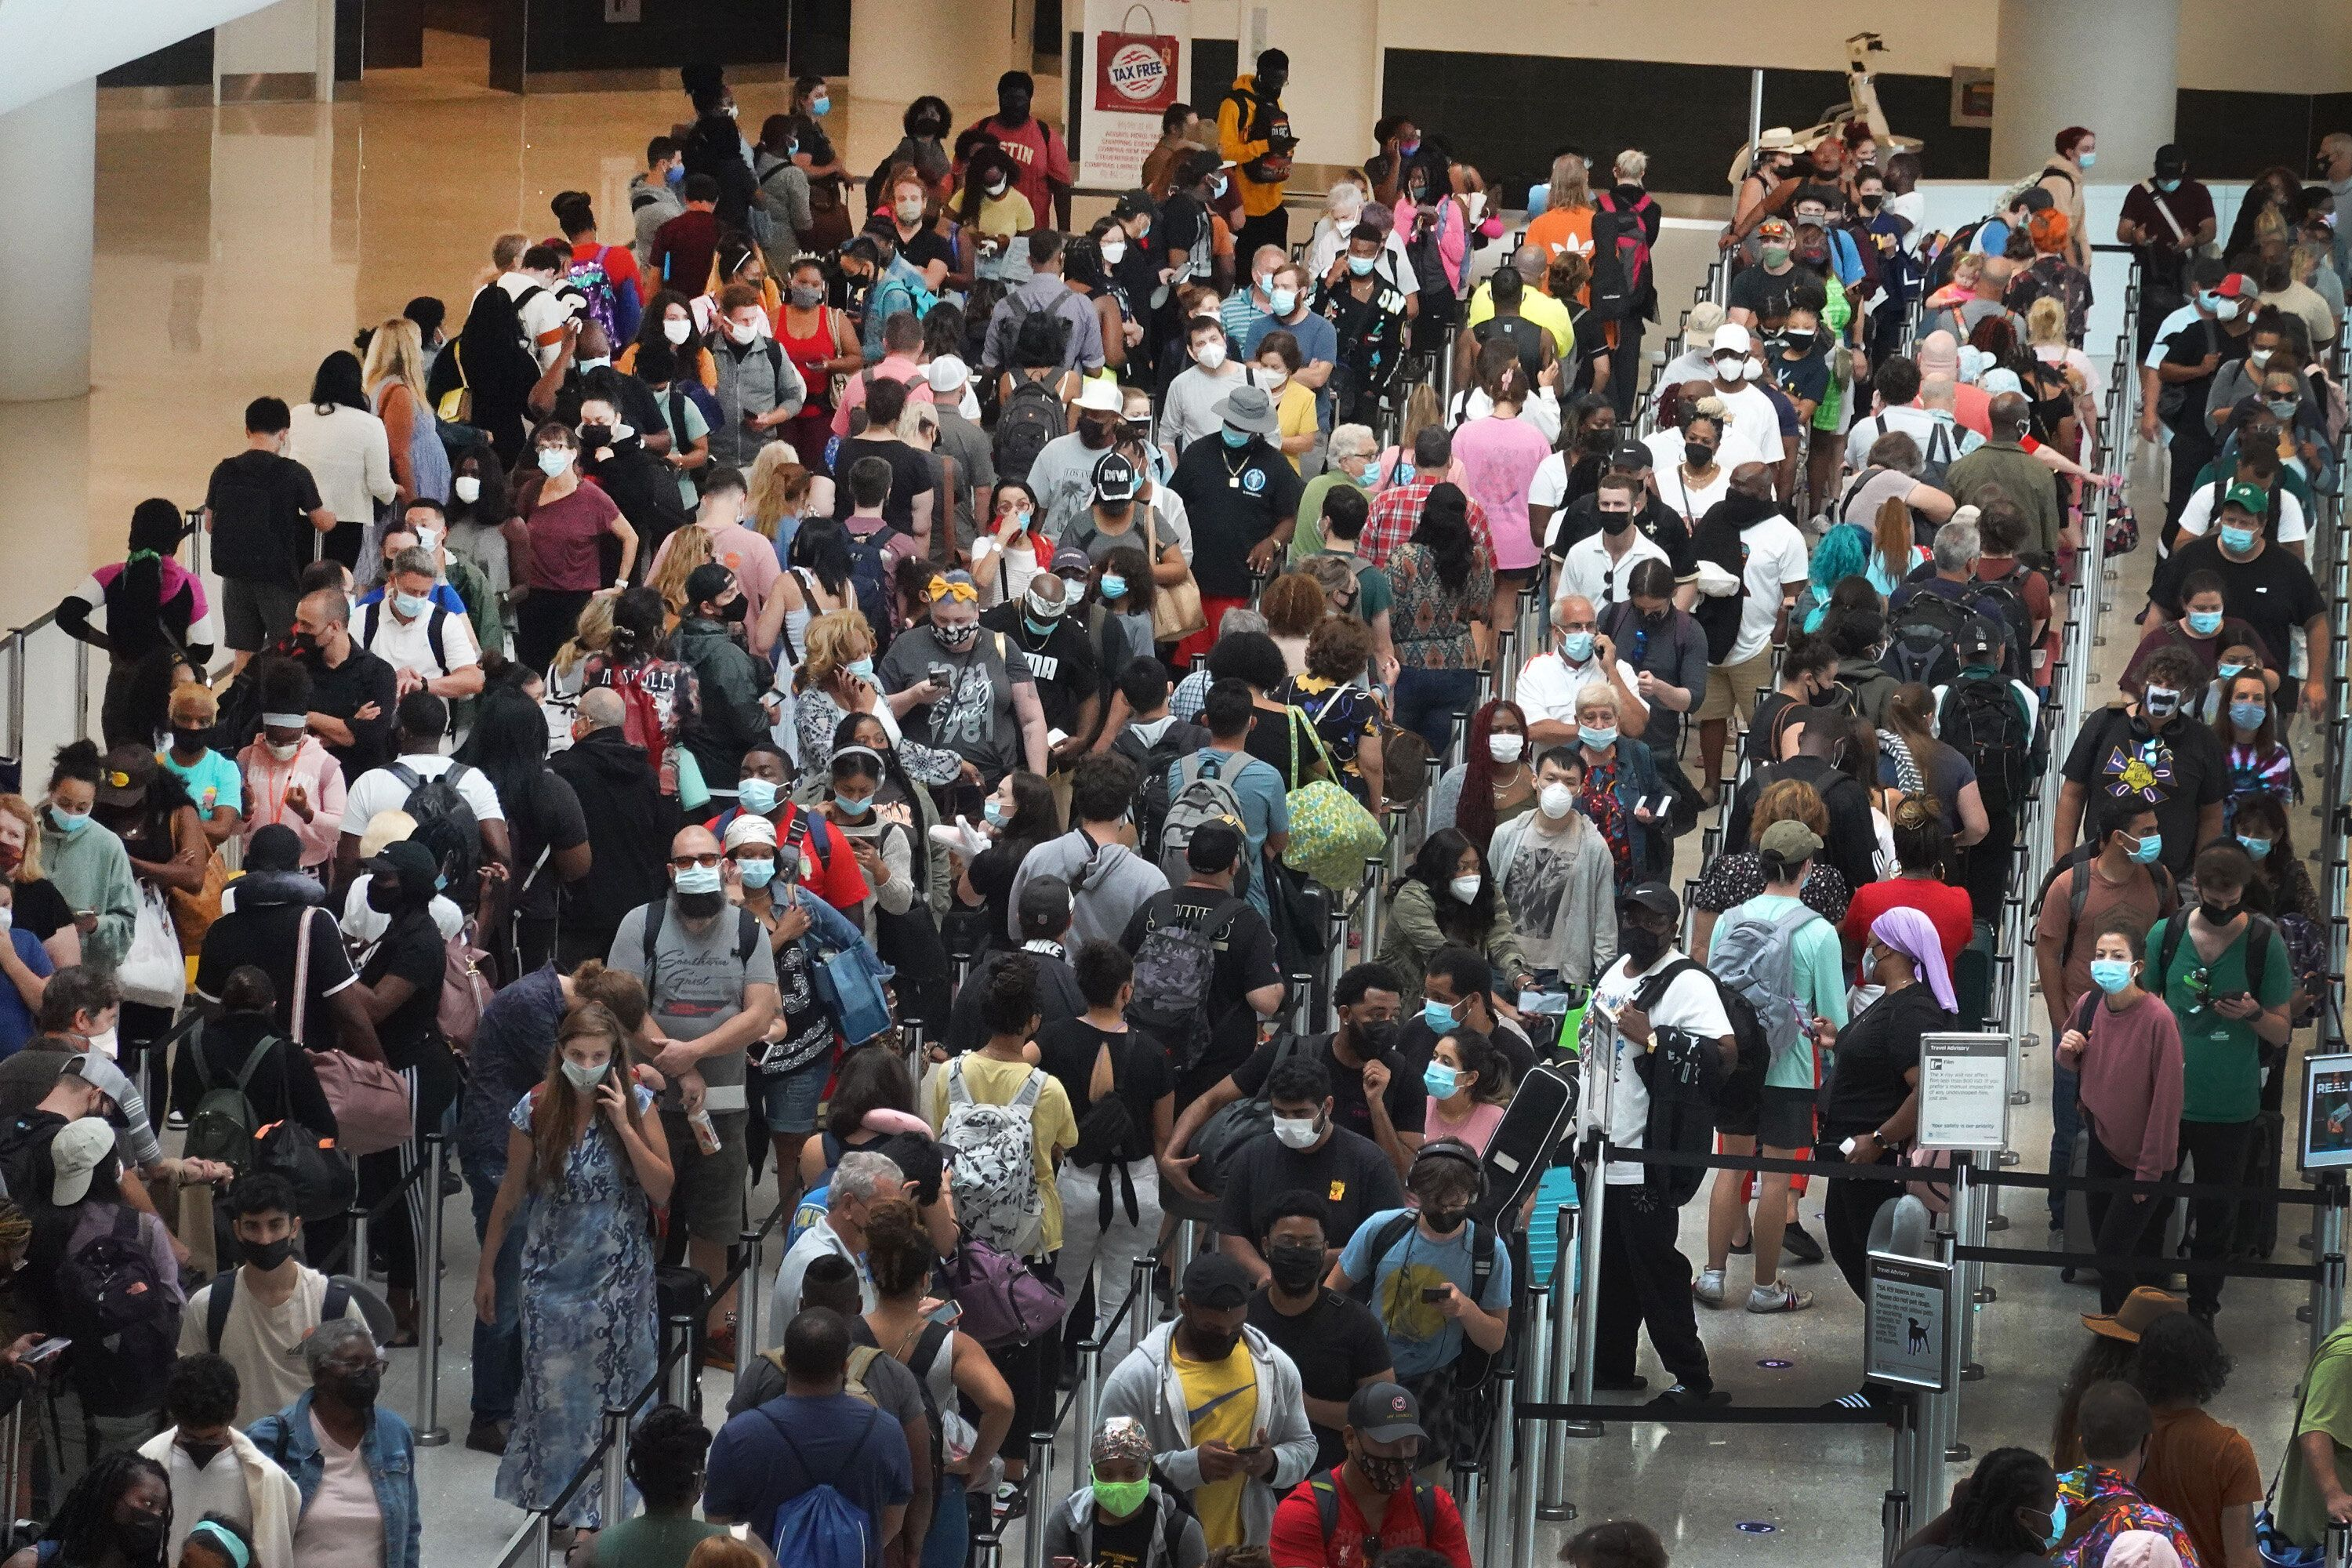 People stand in line to get through the TSA security checkpoint at Louis Armstrong New Orleans International Airport on Satur